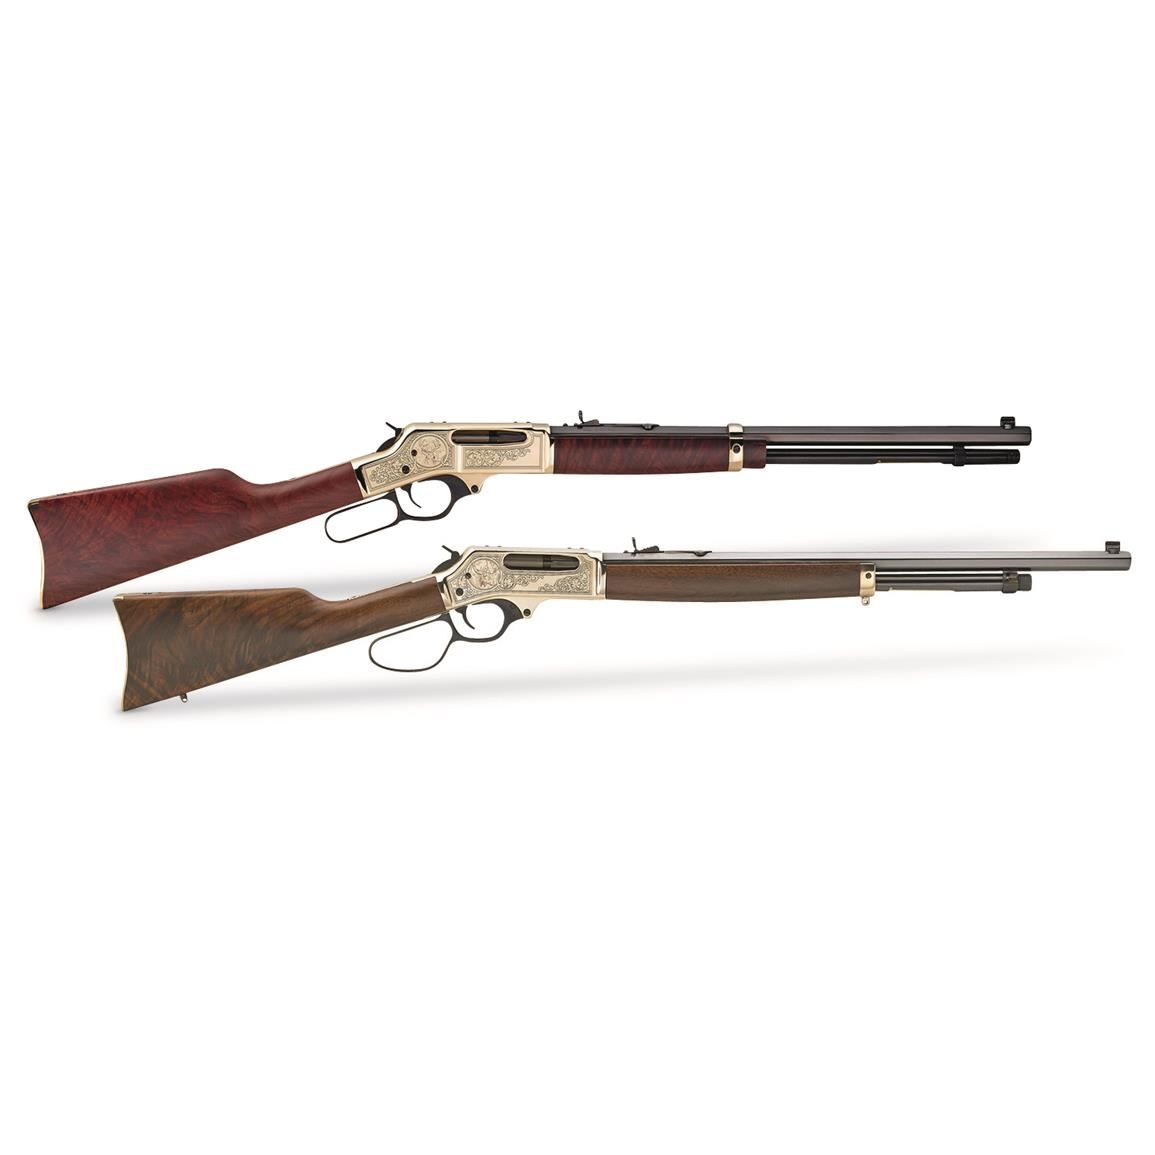 "Henry 45-70 Brass Wildlife Edition, Lever Action, .45-70 Government, 22"" Octagonal Barrel, 4 Rounds"